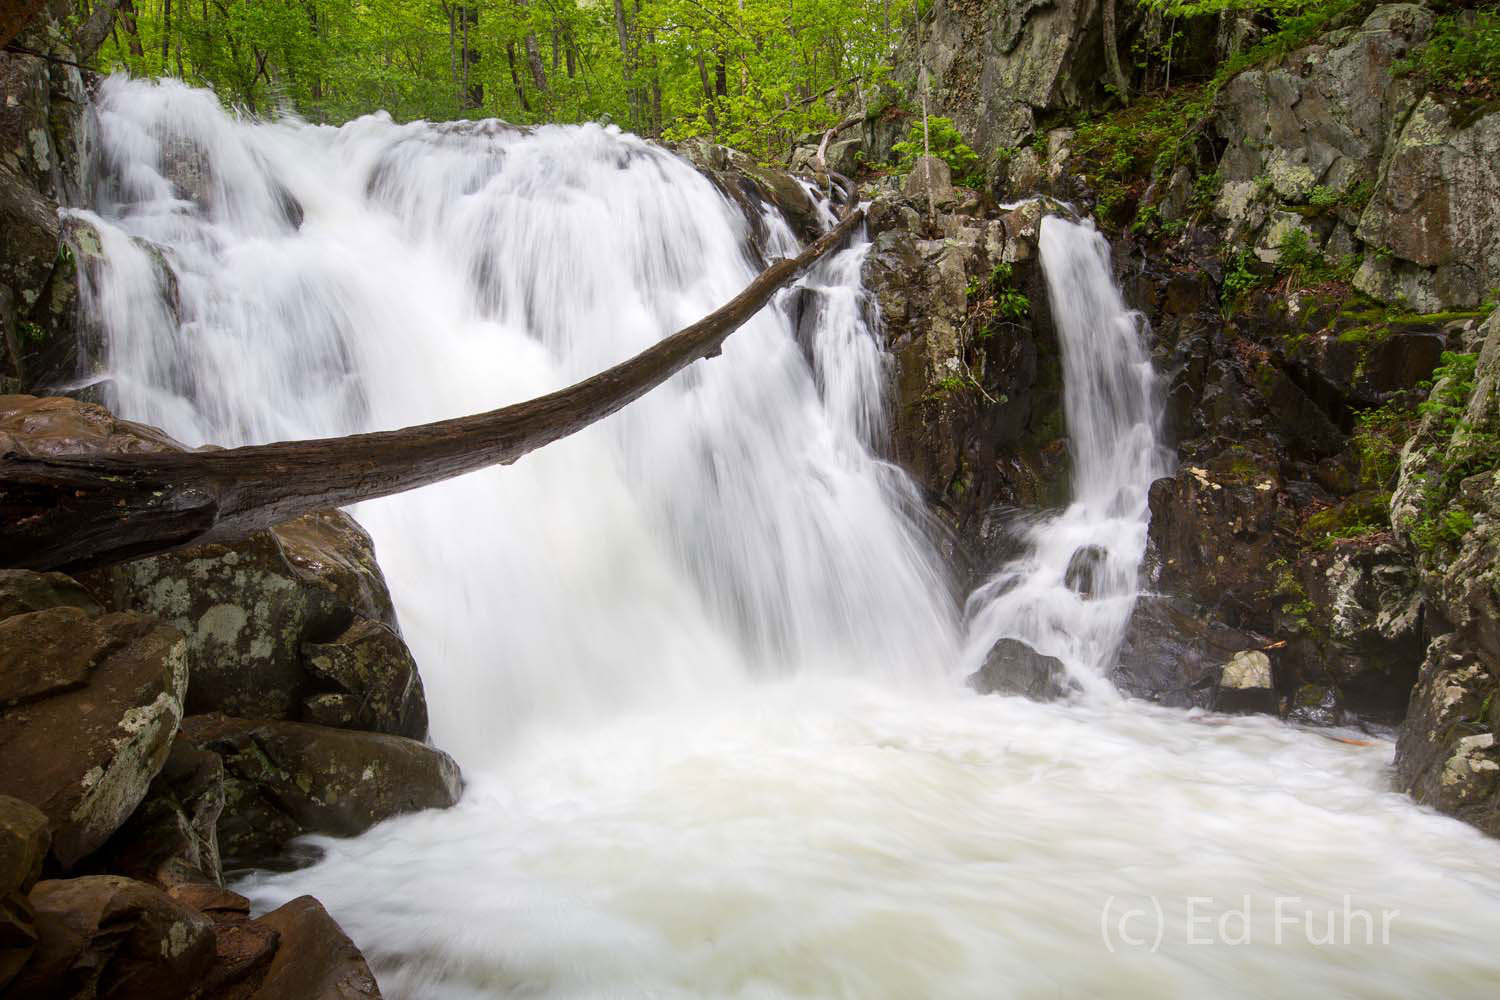 Swollen by days of exceptional rains, Rose River has become a deafening roaring waterfall in Shenandoah National Park.